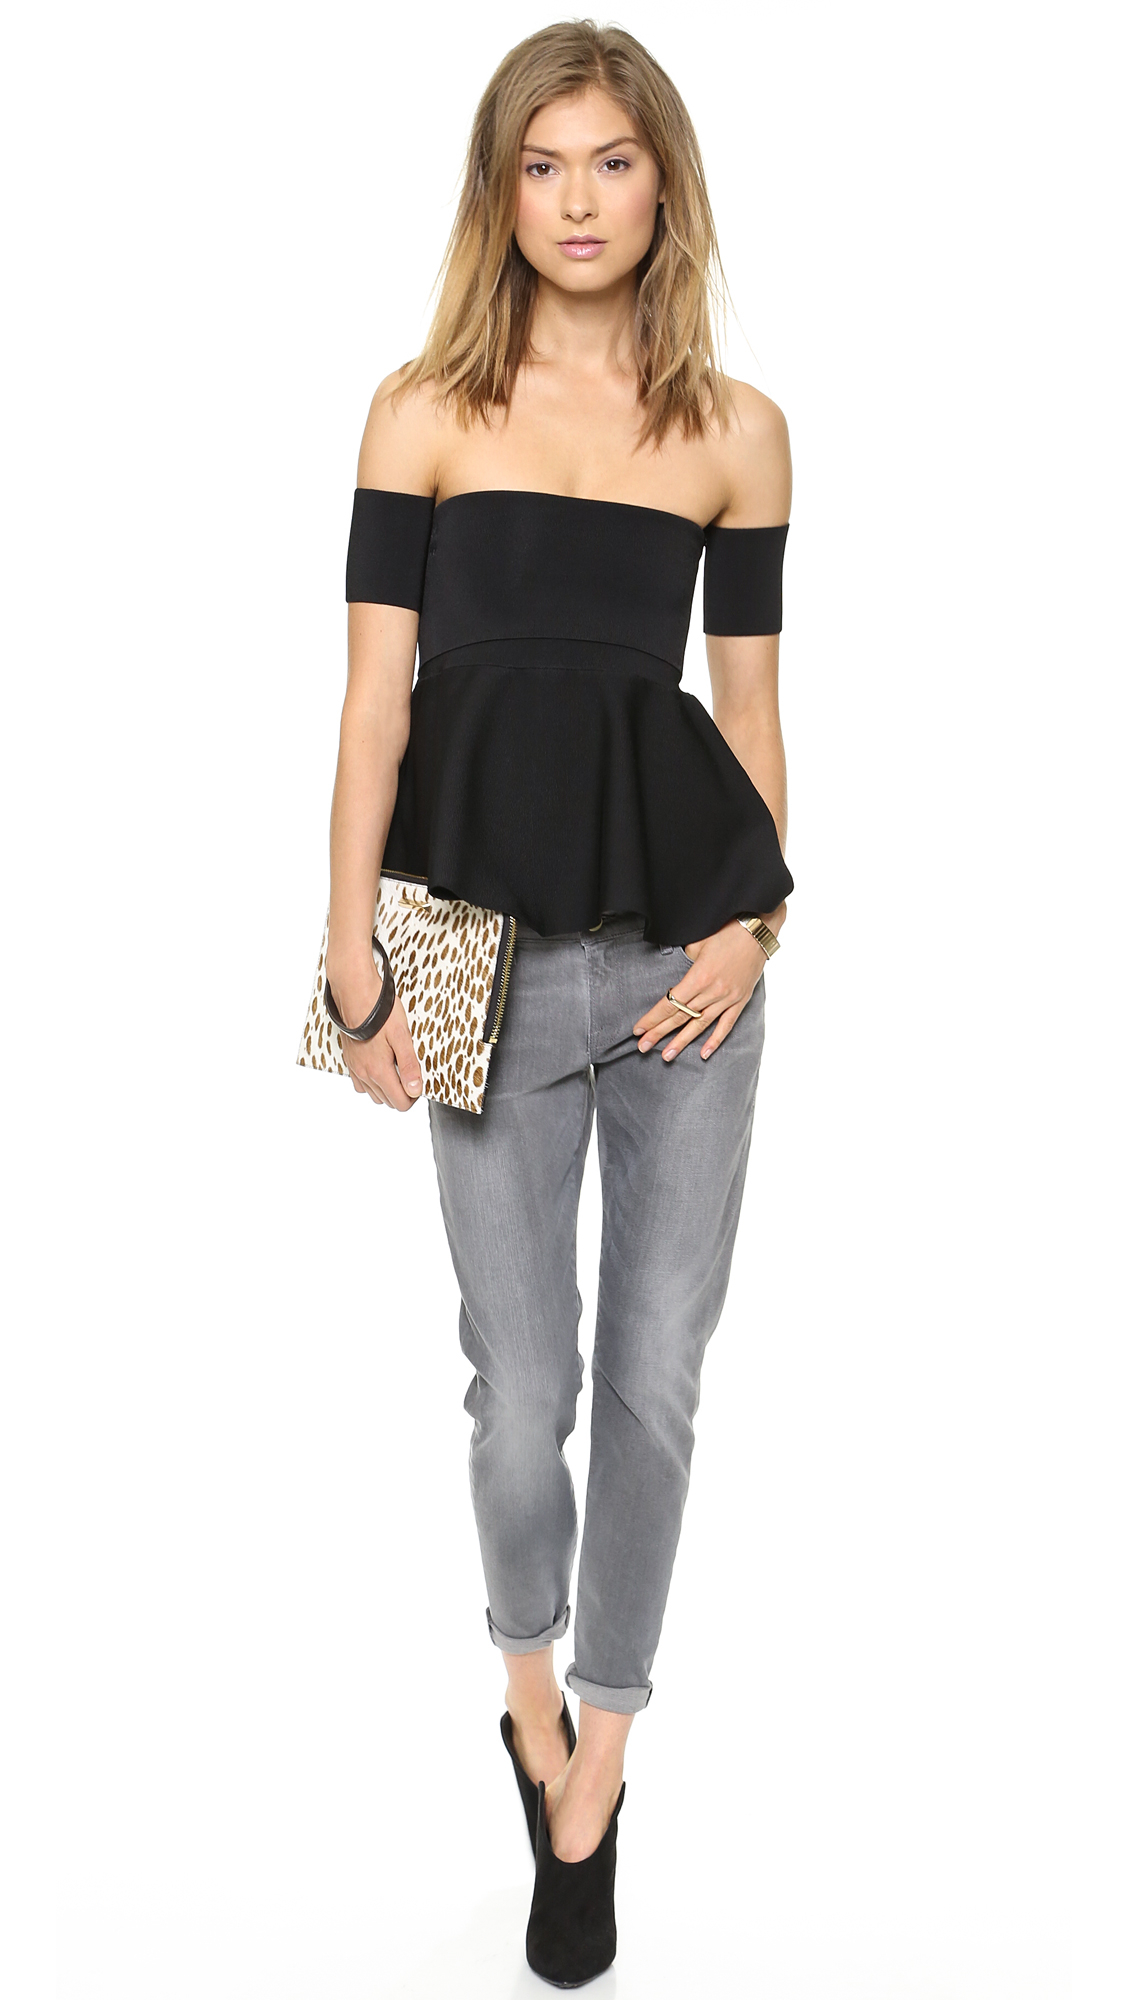 Issa Esther Shoulderless Top Black In Black